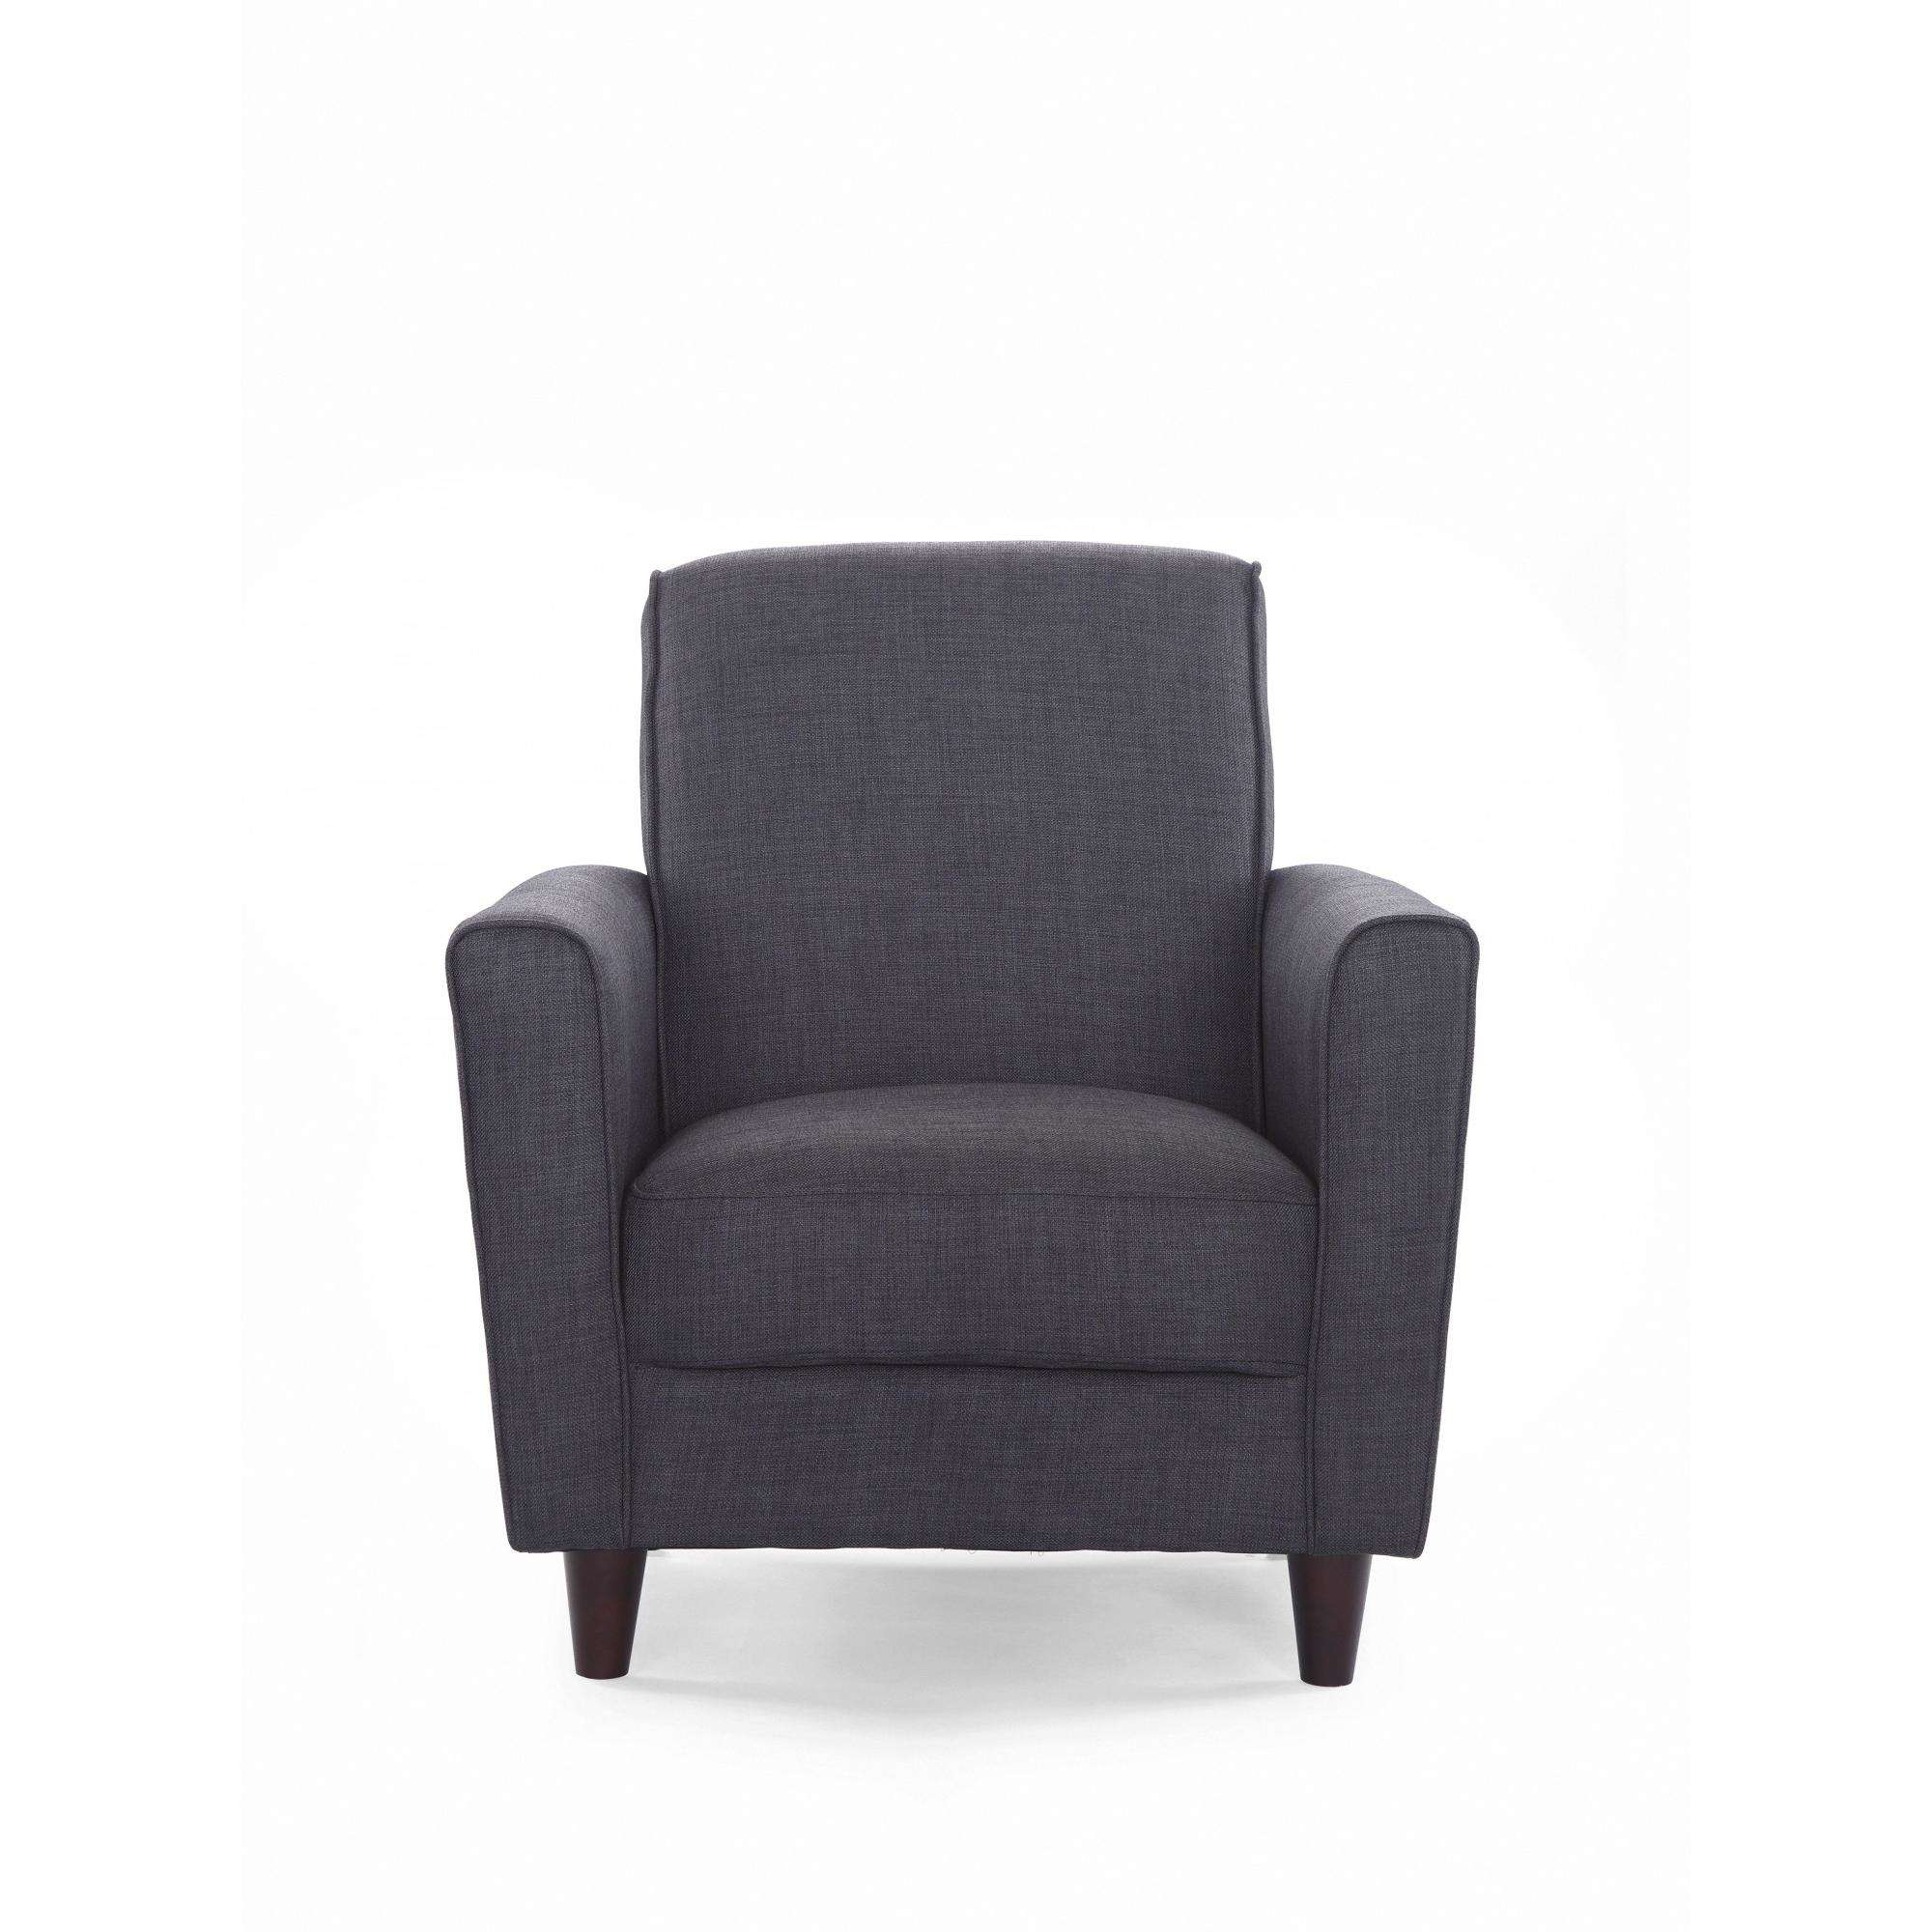 Exceptionnel DHI Enzo Arm Accent Chair, Solid Woven, Multiple Colors